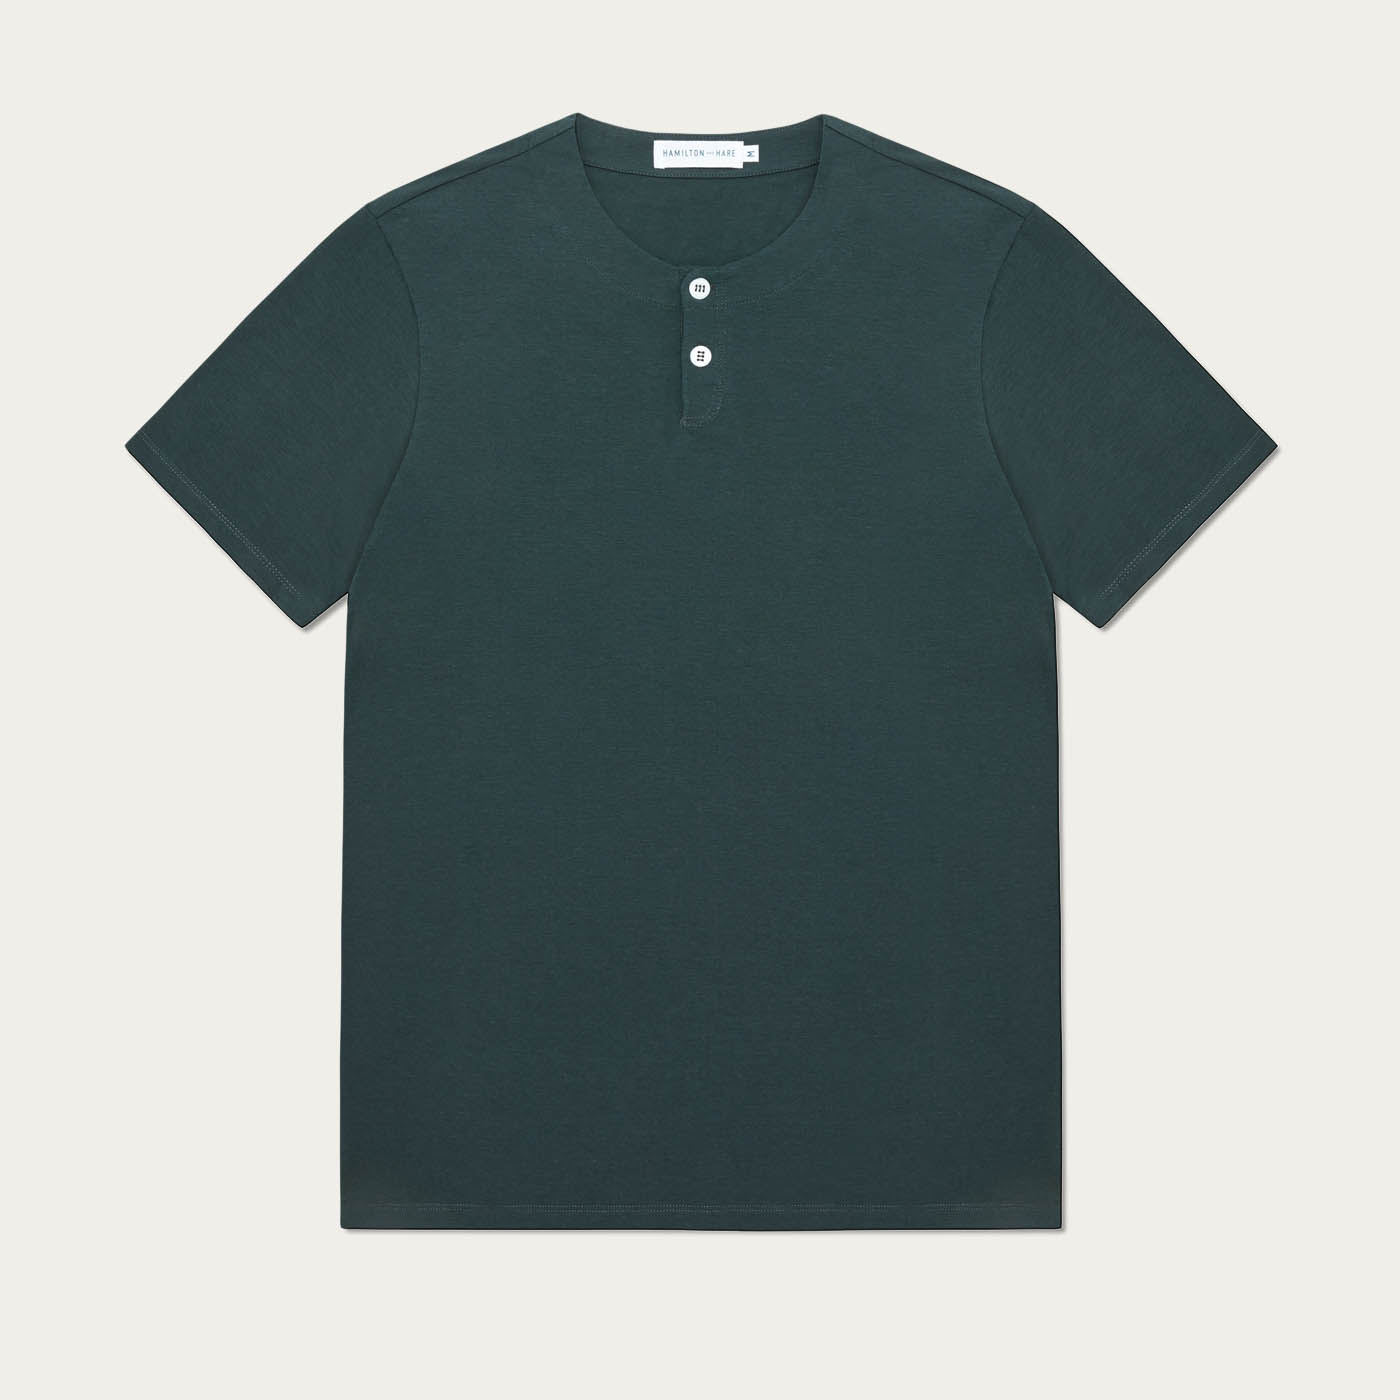 Green Short Sleeve Jersey Henley Tee-shirt 0